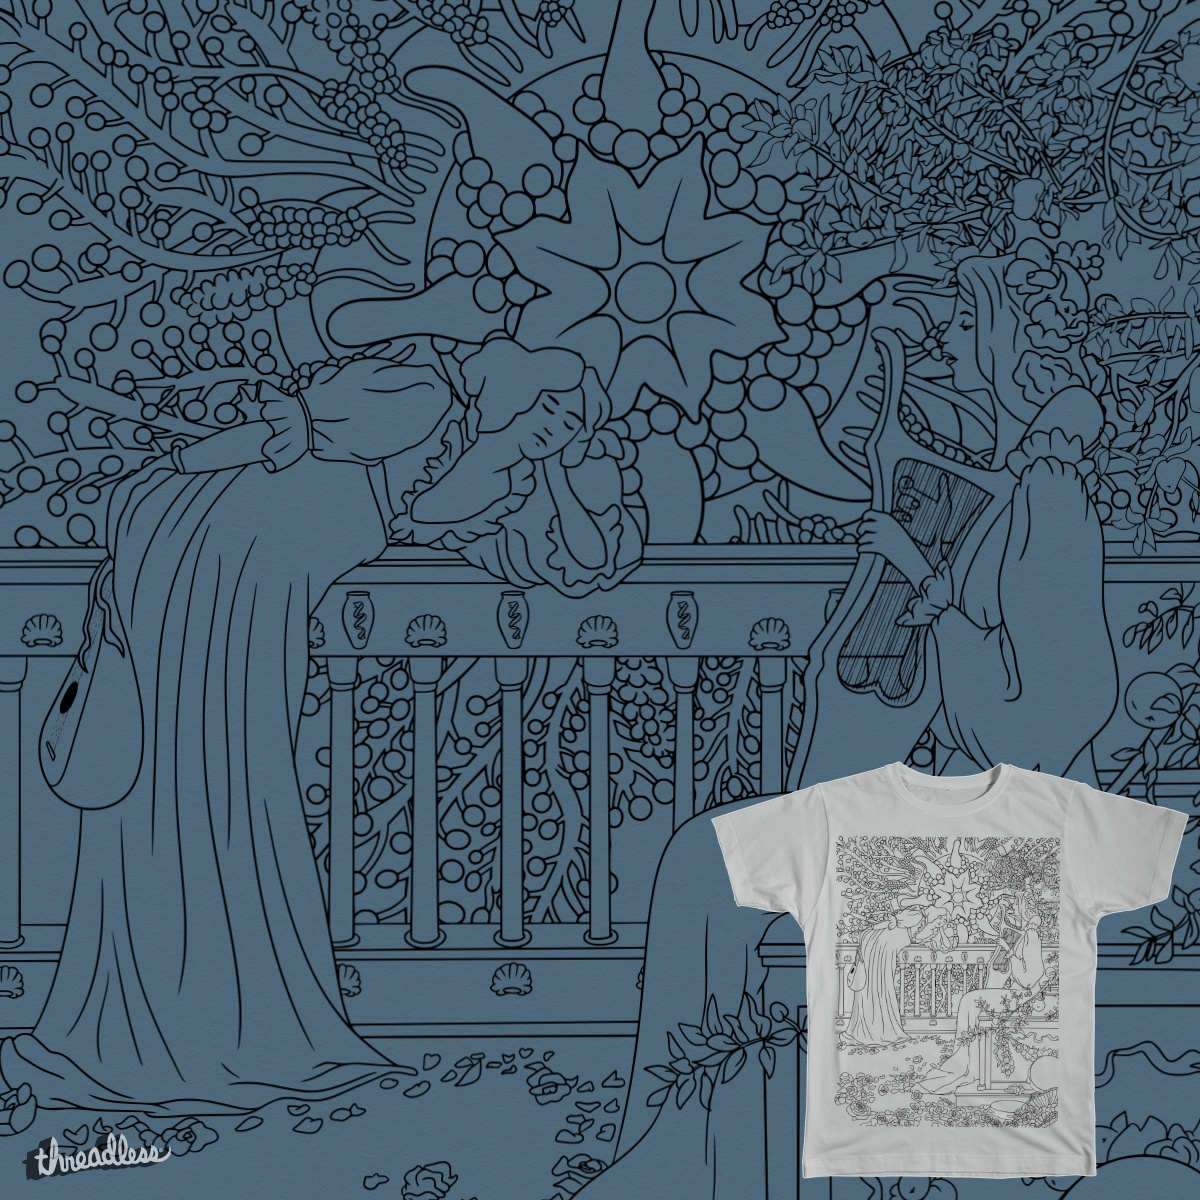 Concert for the Lovecraftian Horror, a cool t-shirt design